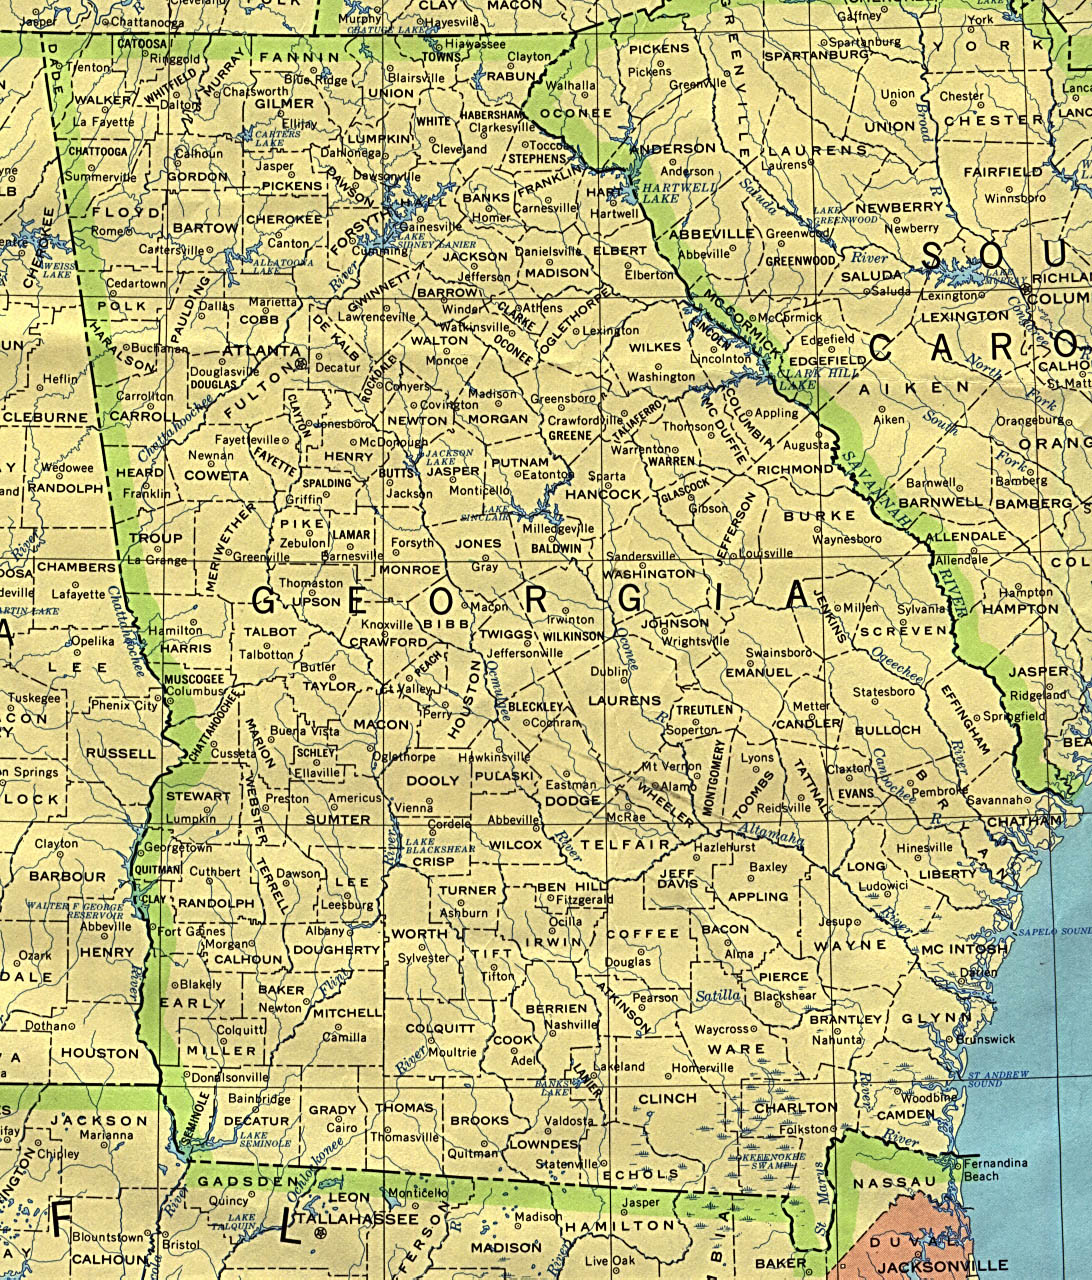 Map Of Georgia Showing Cities.Georgia Maps Perry Castaneda Map Collection Ut Library Online